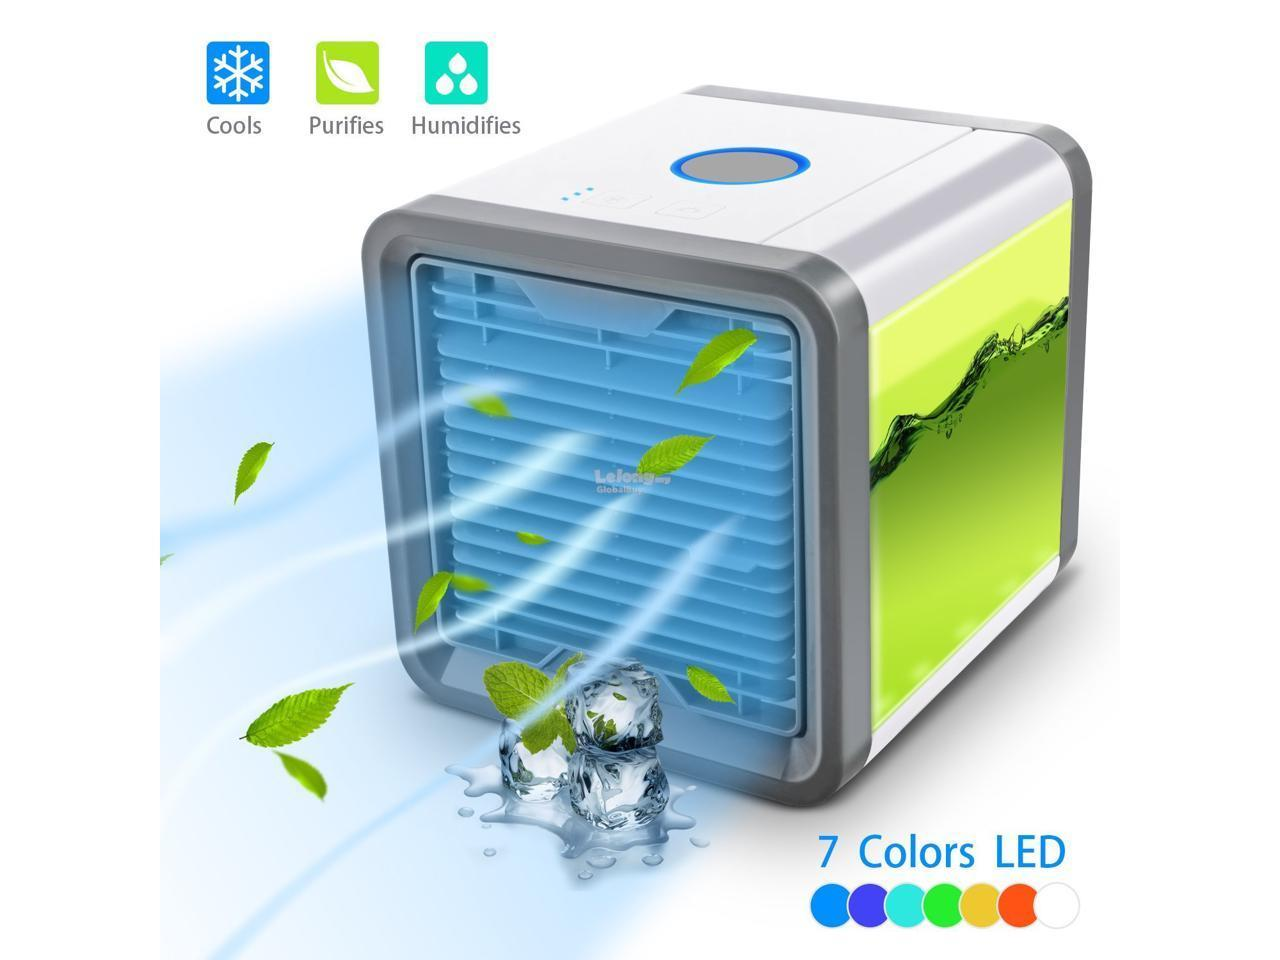 Mini Portable Air Conditioner Cooli End 11 17 2018 3 49 Pm